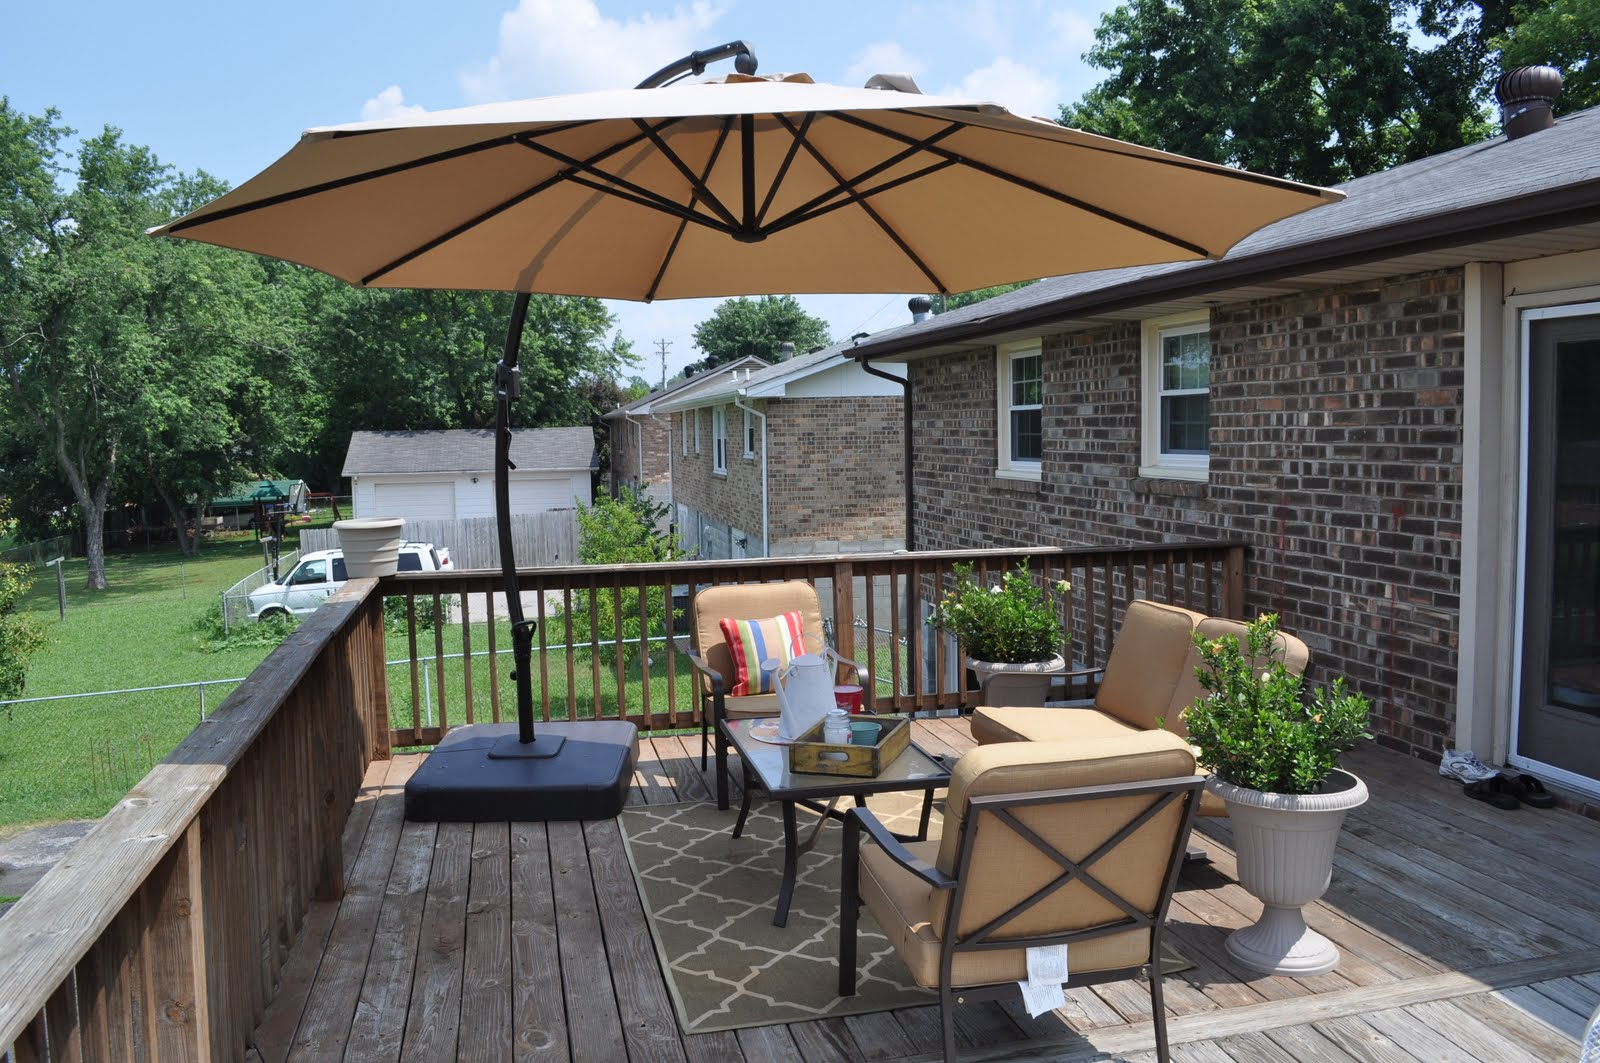 Outdoor deck umbrella  56